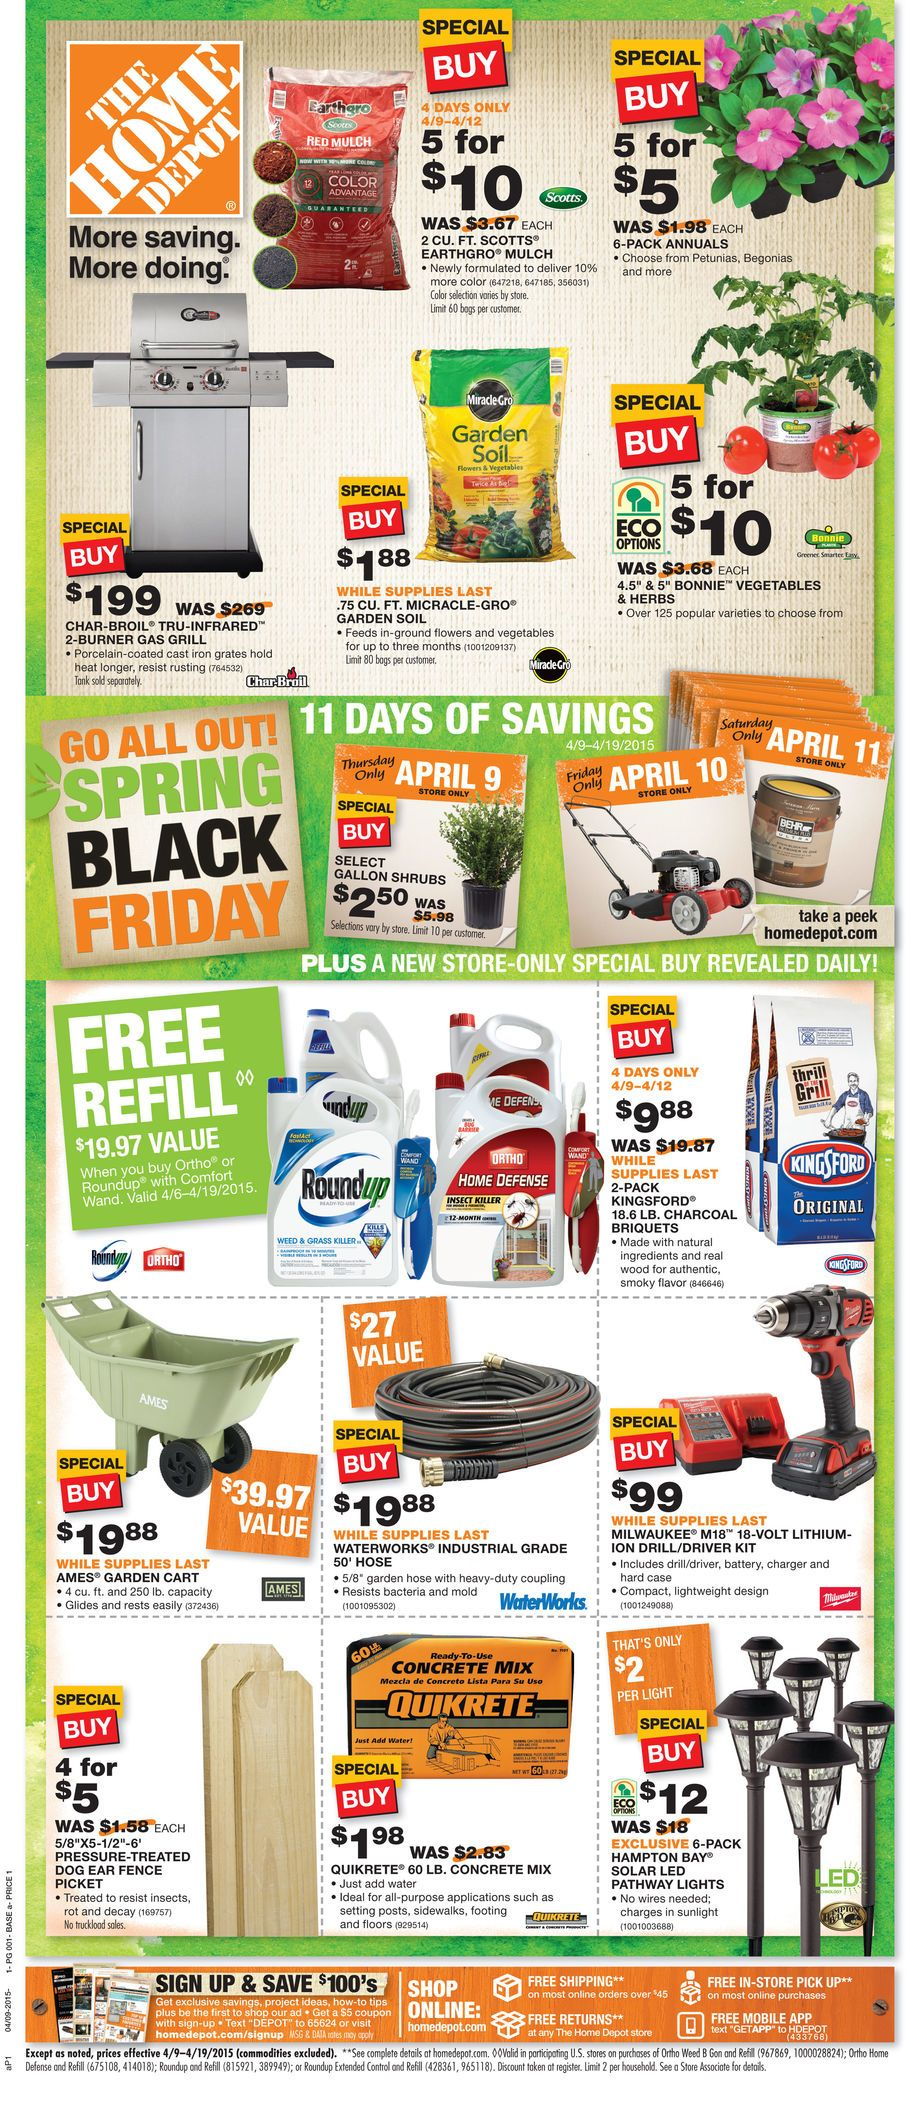 Atlanta Home Depot Local Ads Guides and Catalogs